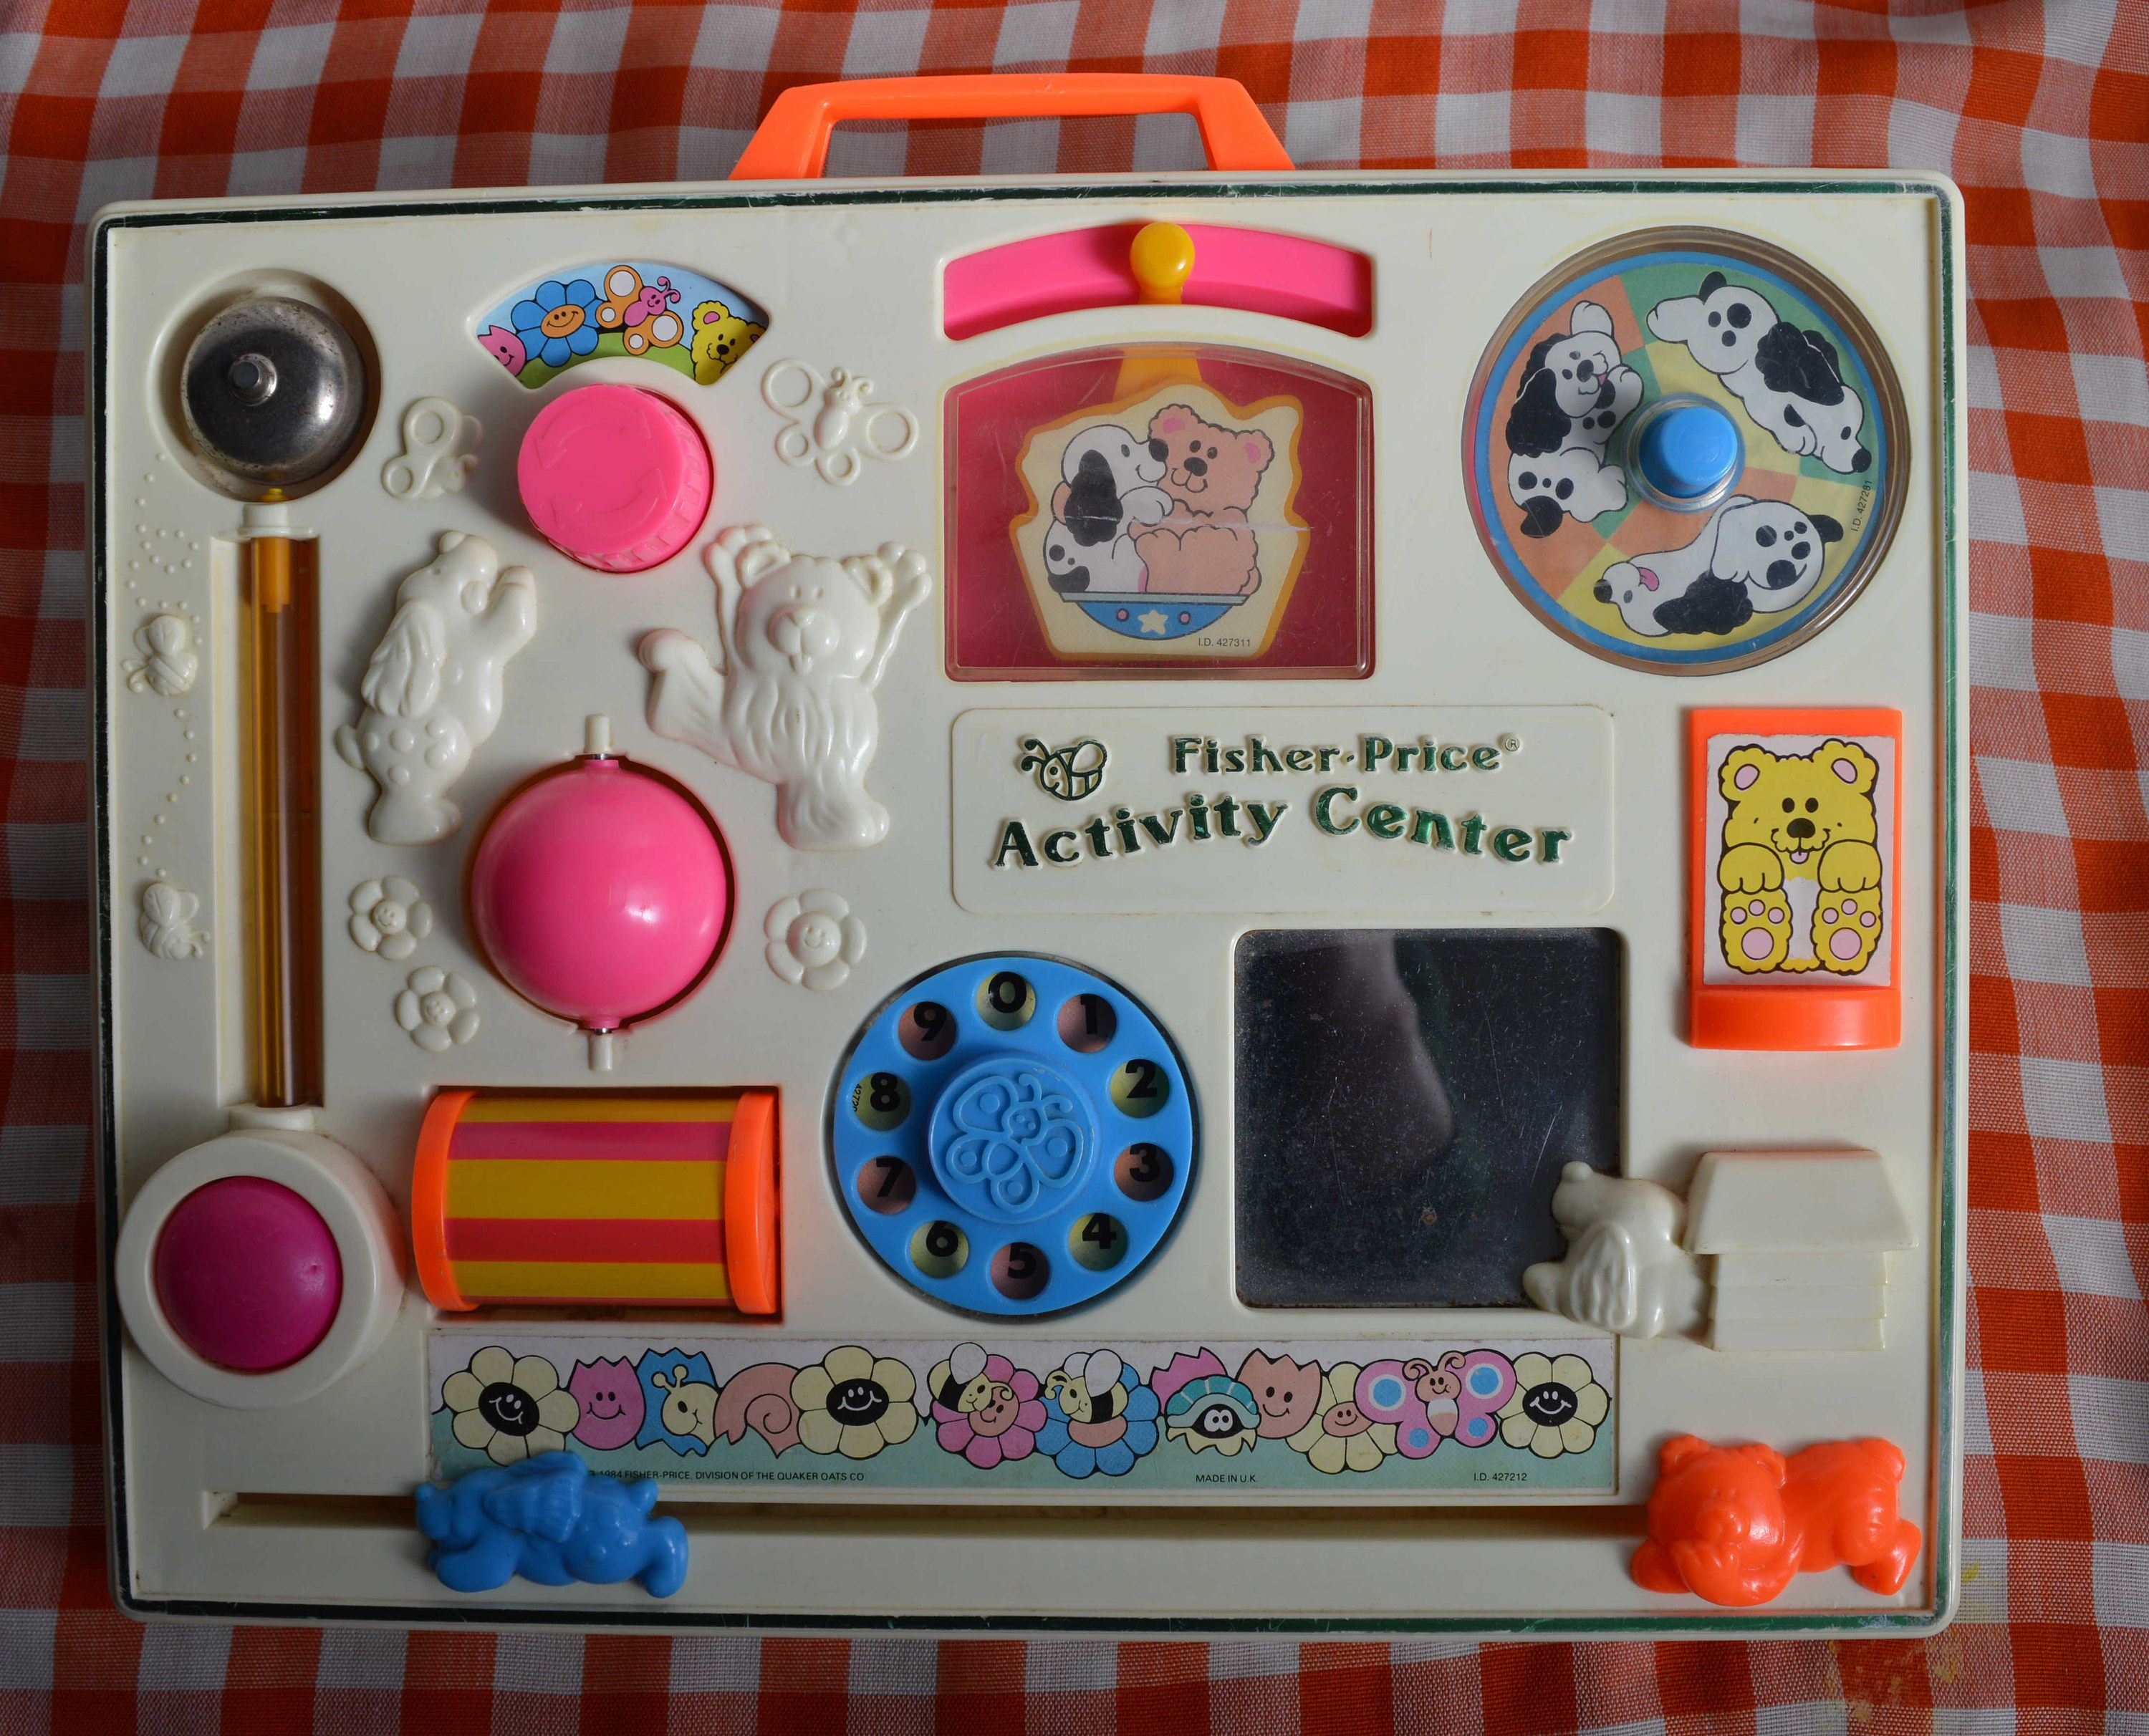 Vintage FISHER PRICE Activity Centre 134 1134 vintage toy for